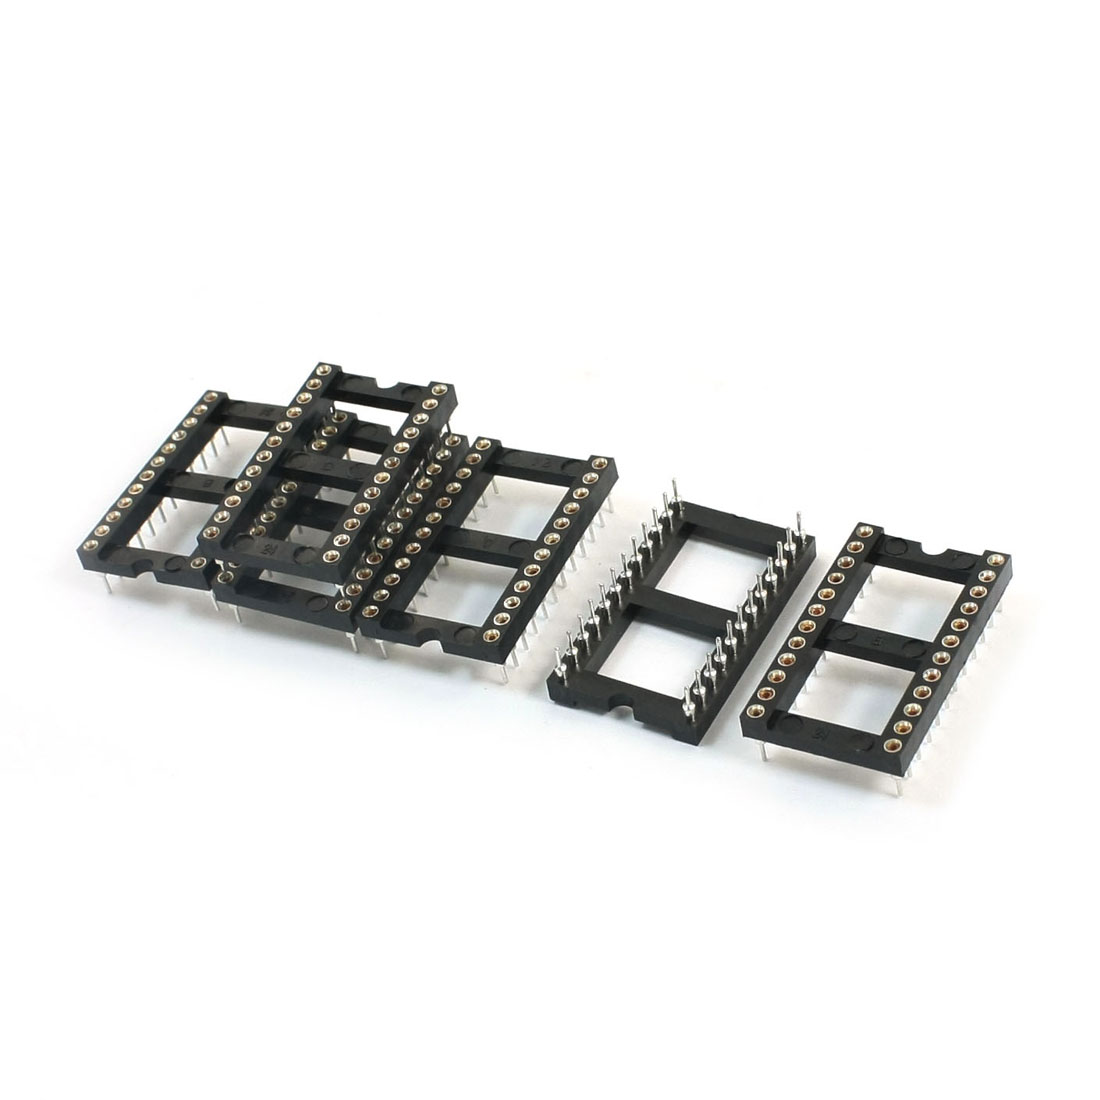 6Pcs 2.54mm Pitch Double Row 24-Pin Soldering DIP Through Hole Mounting IC Socket Swapping Adapter